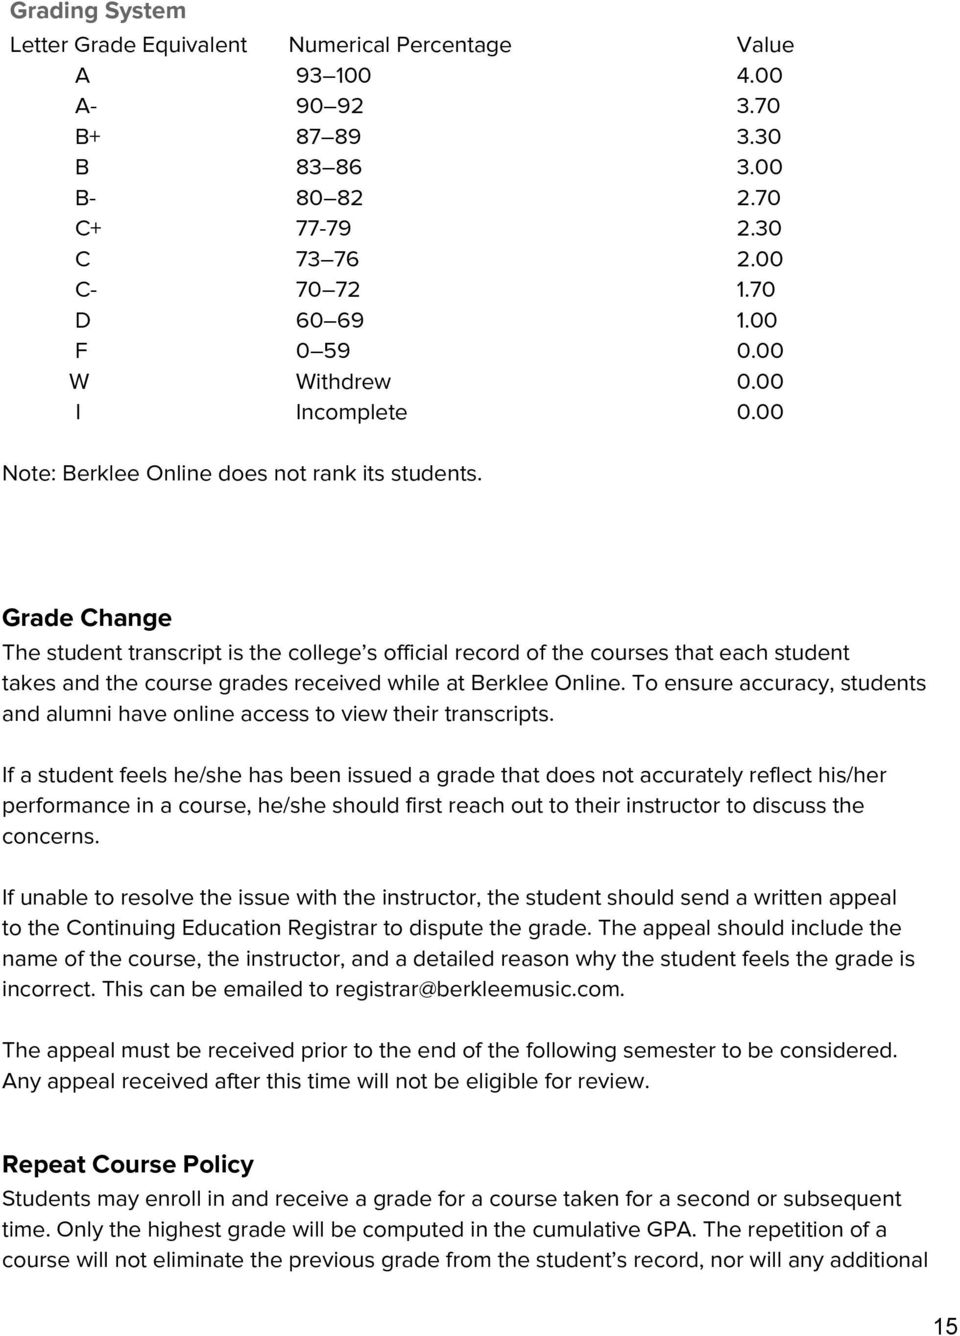 Grade Change The student transcript is the college s official record of the courses that each student takes and the course grades received while at Berklee Online.